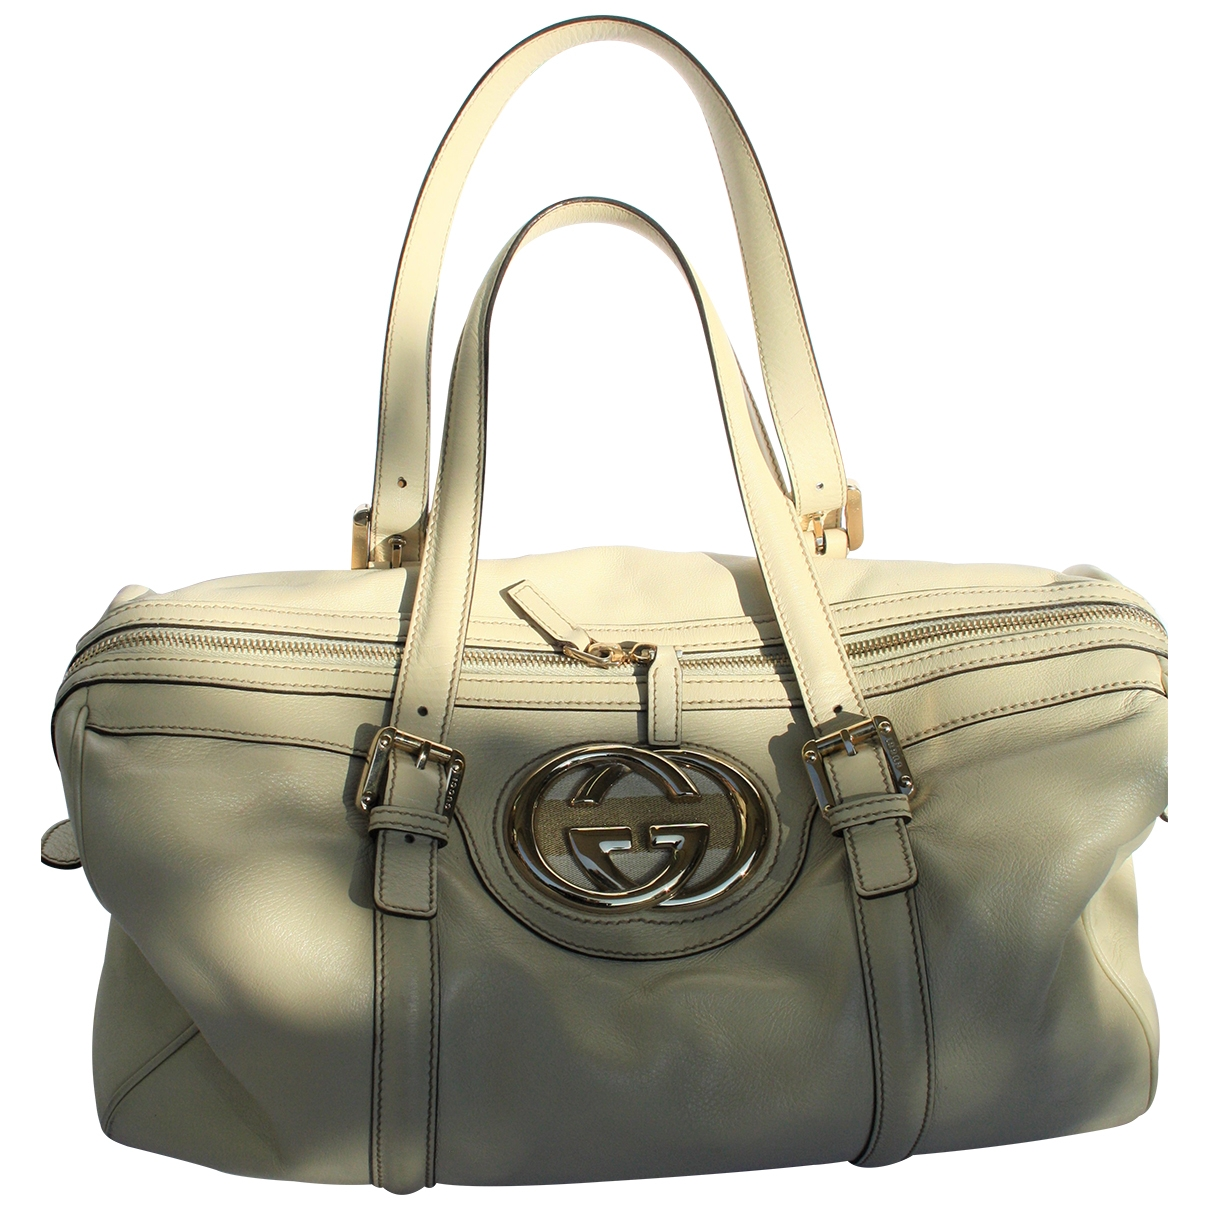 Gucci \N White Leather handbag for Women \N